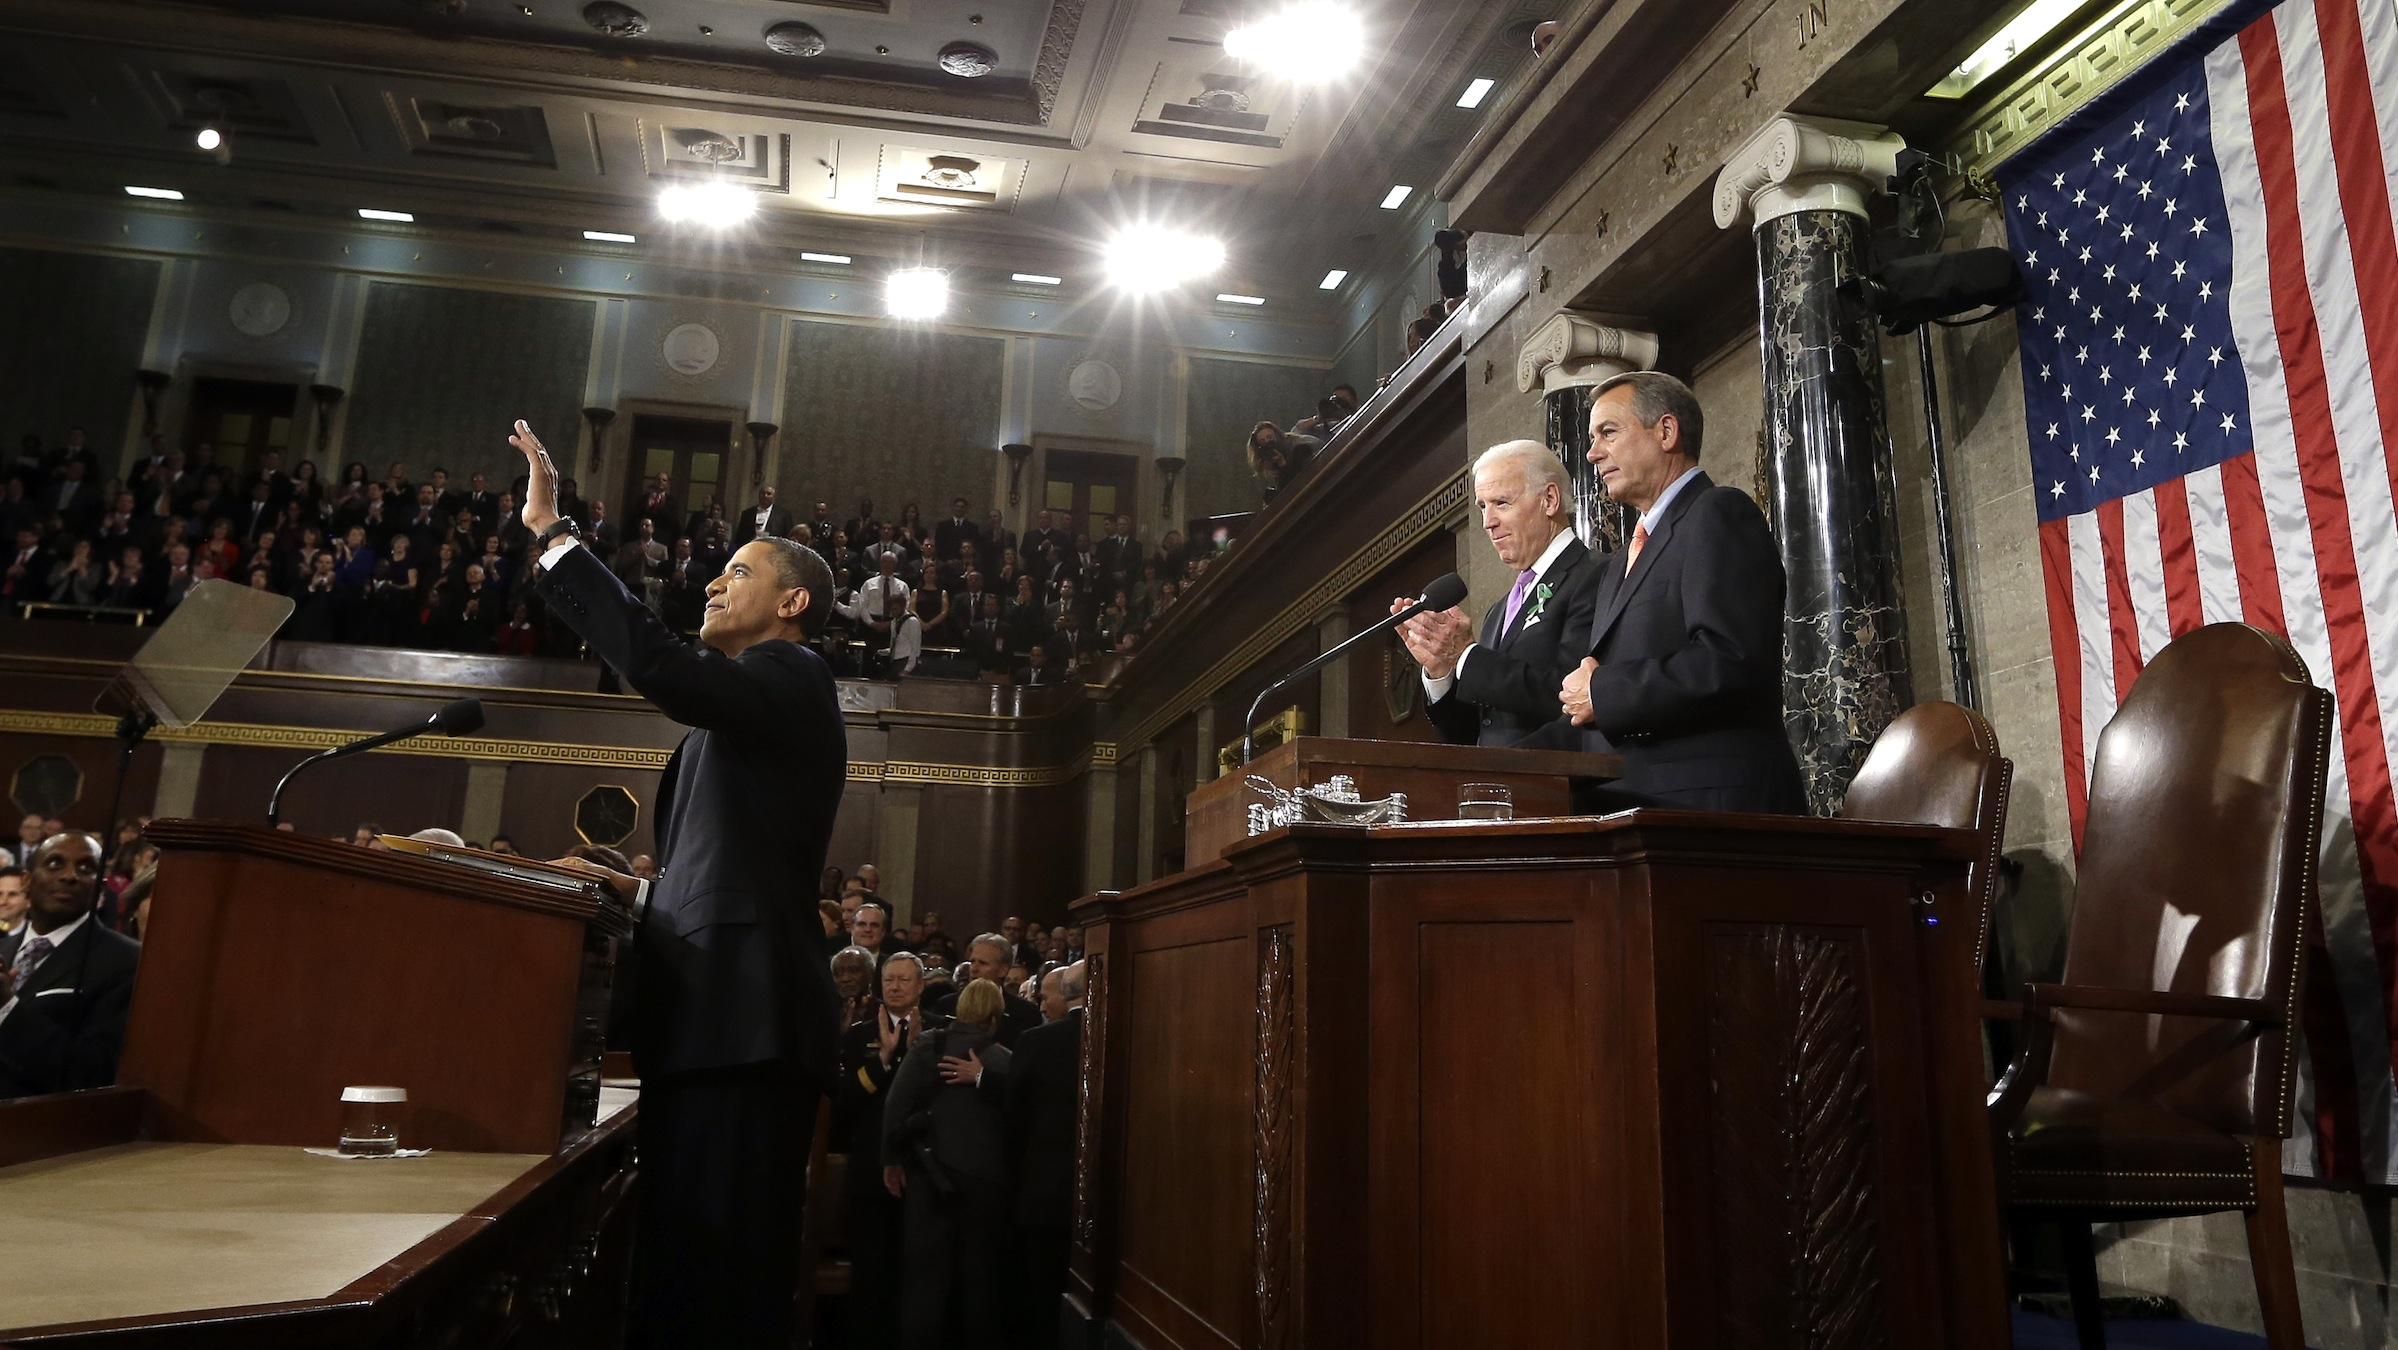 President Barack Obama waves before giving his State of the Union address during a joint session of Congress on Capitol Hill in Washington, Tuesday Feb. 12, 2013. Vice President Joe Biden and House Speaker John Boehner of Ohio stand behind the president. (AP Photo/Charles Dharapak, Pool)